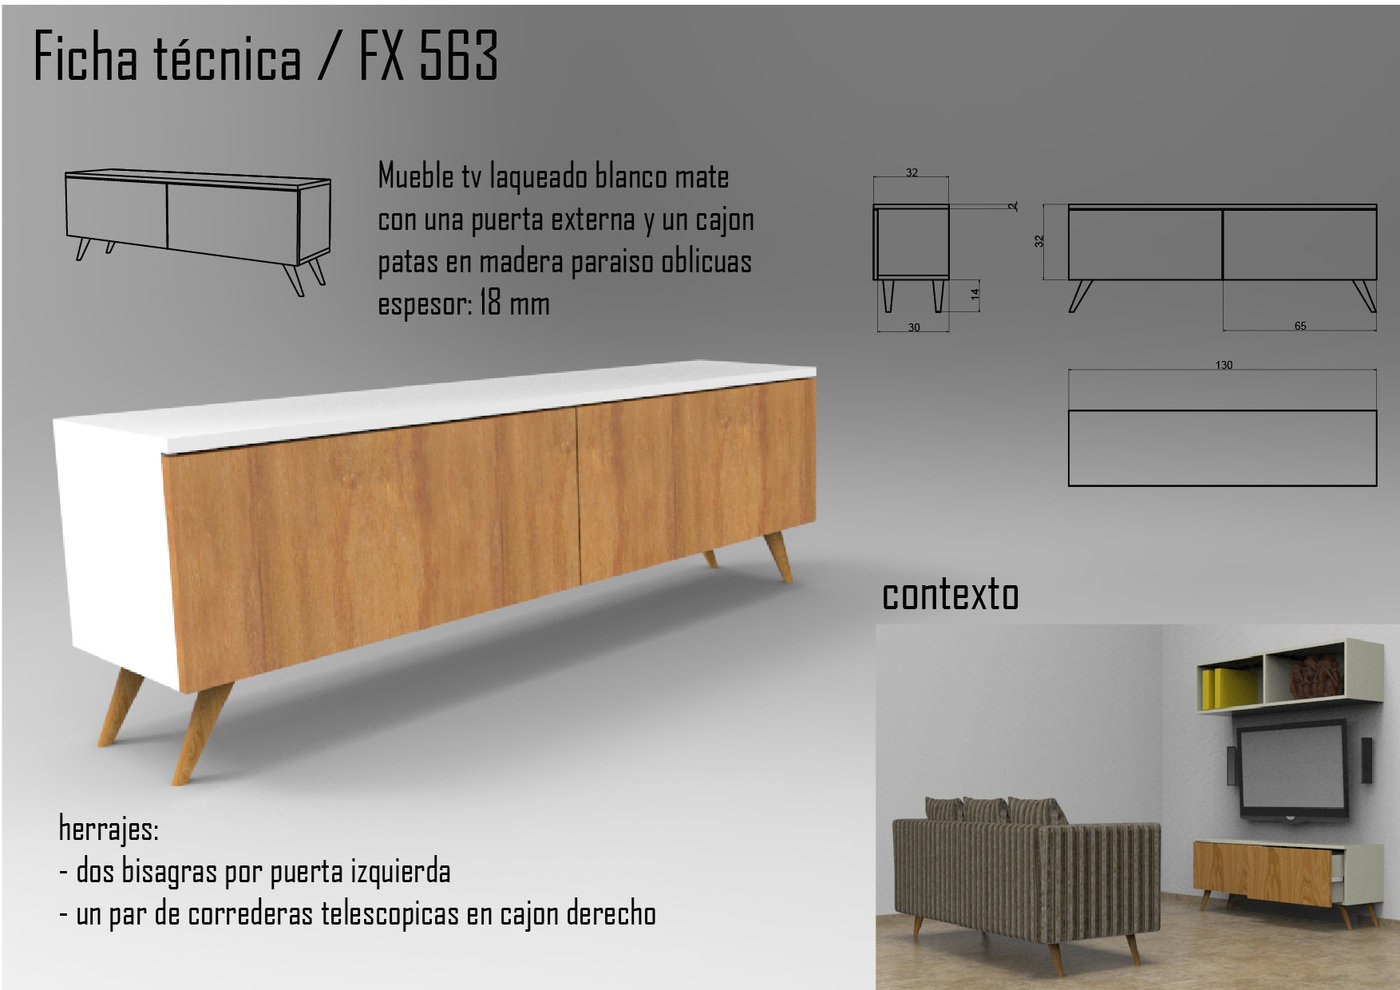 Muebles Hormiga Emergente By Evelyn Moran At Coroflot Com # Muebles Kinesiologia